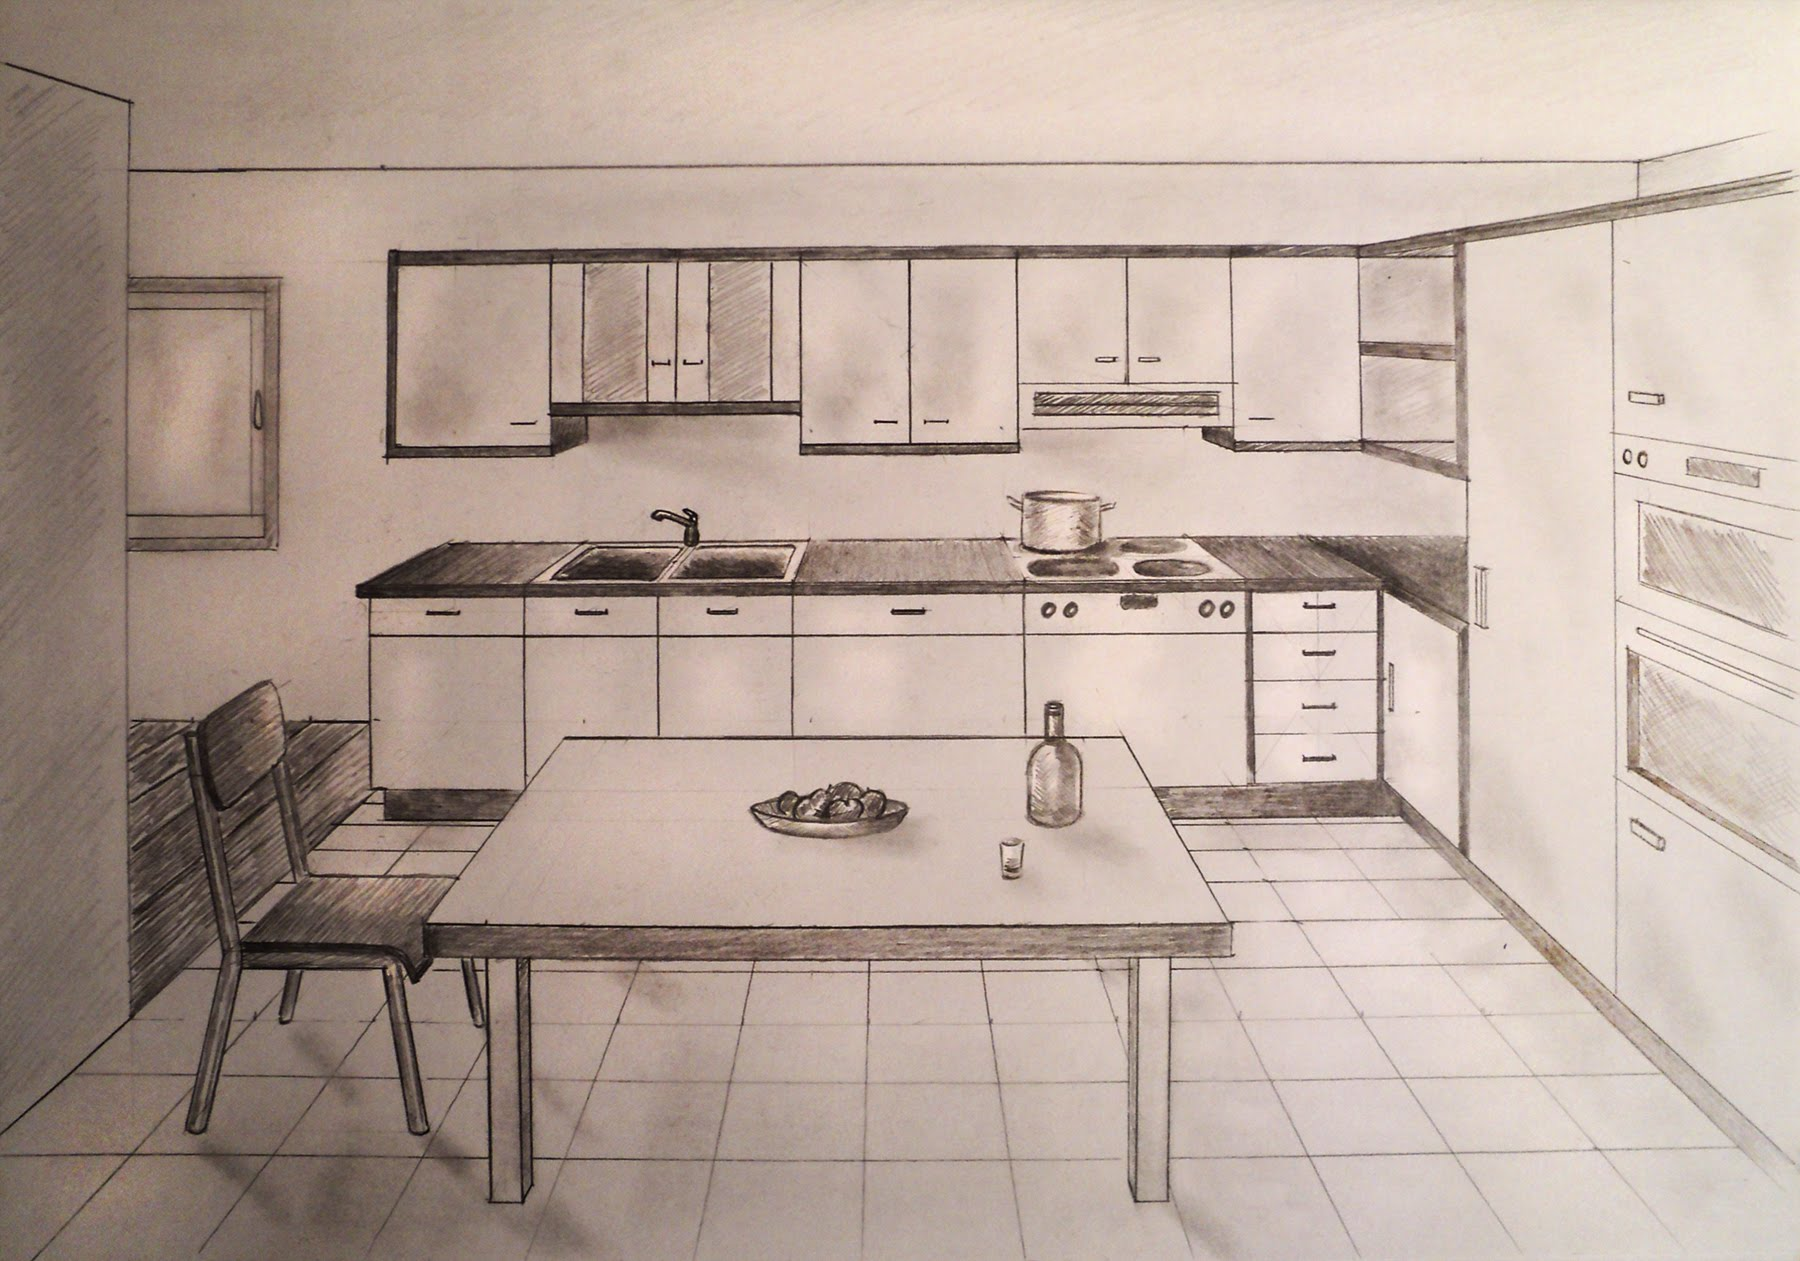 Drawn room kitchen room  with furniture draw perspective